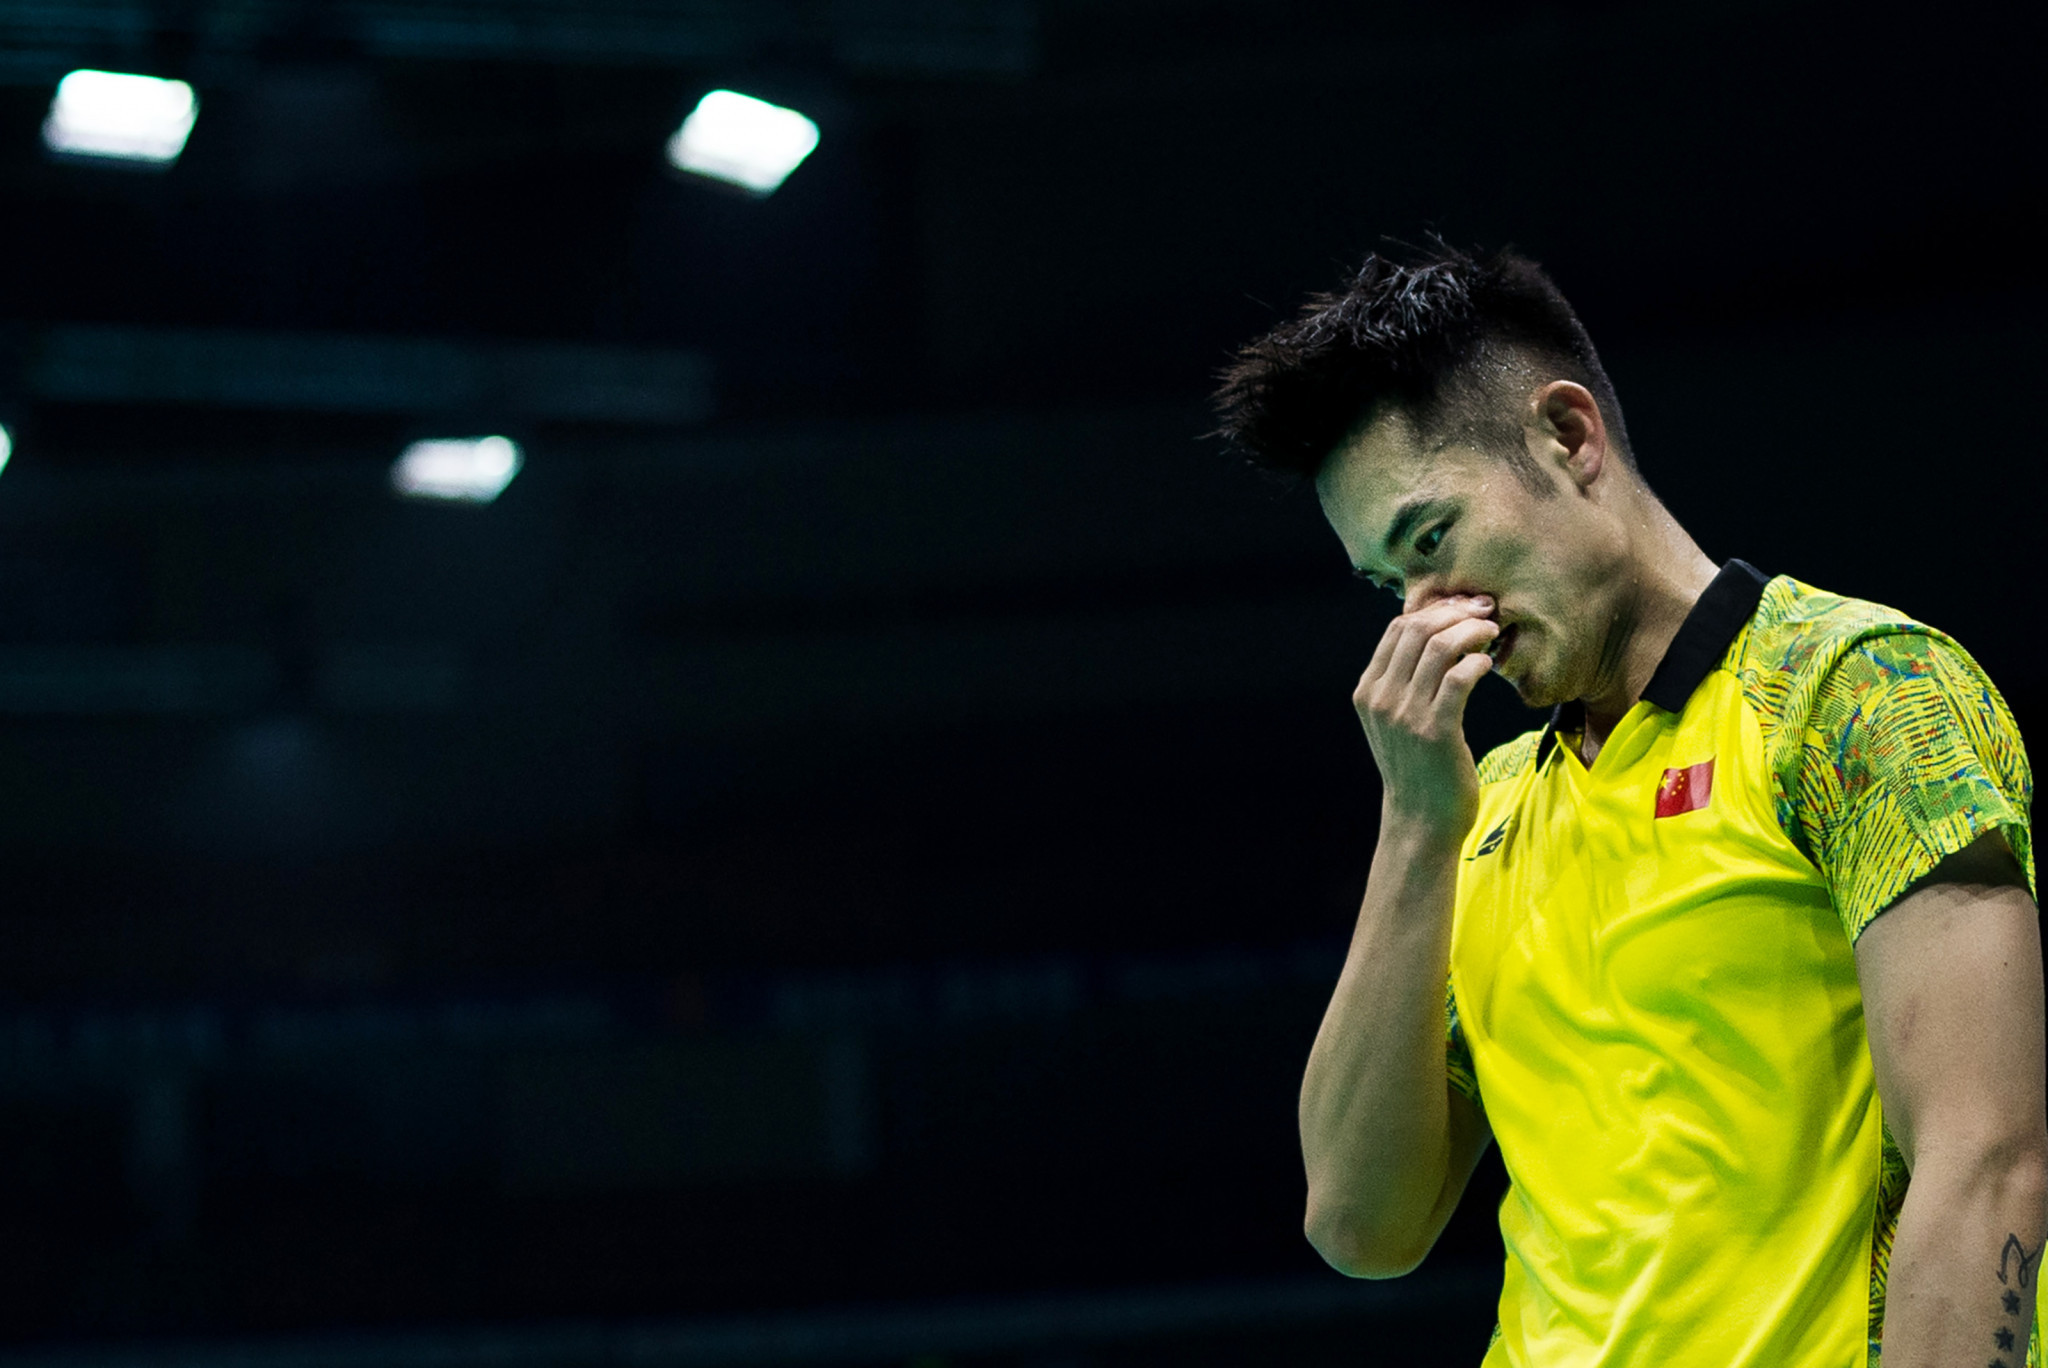 Lin Dan makes first round exit at U.S. Open Badminton Championships